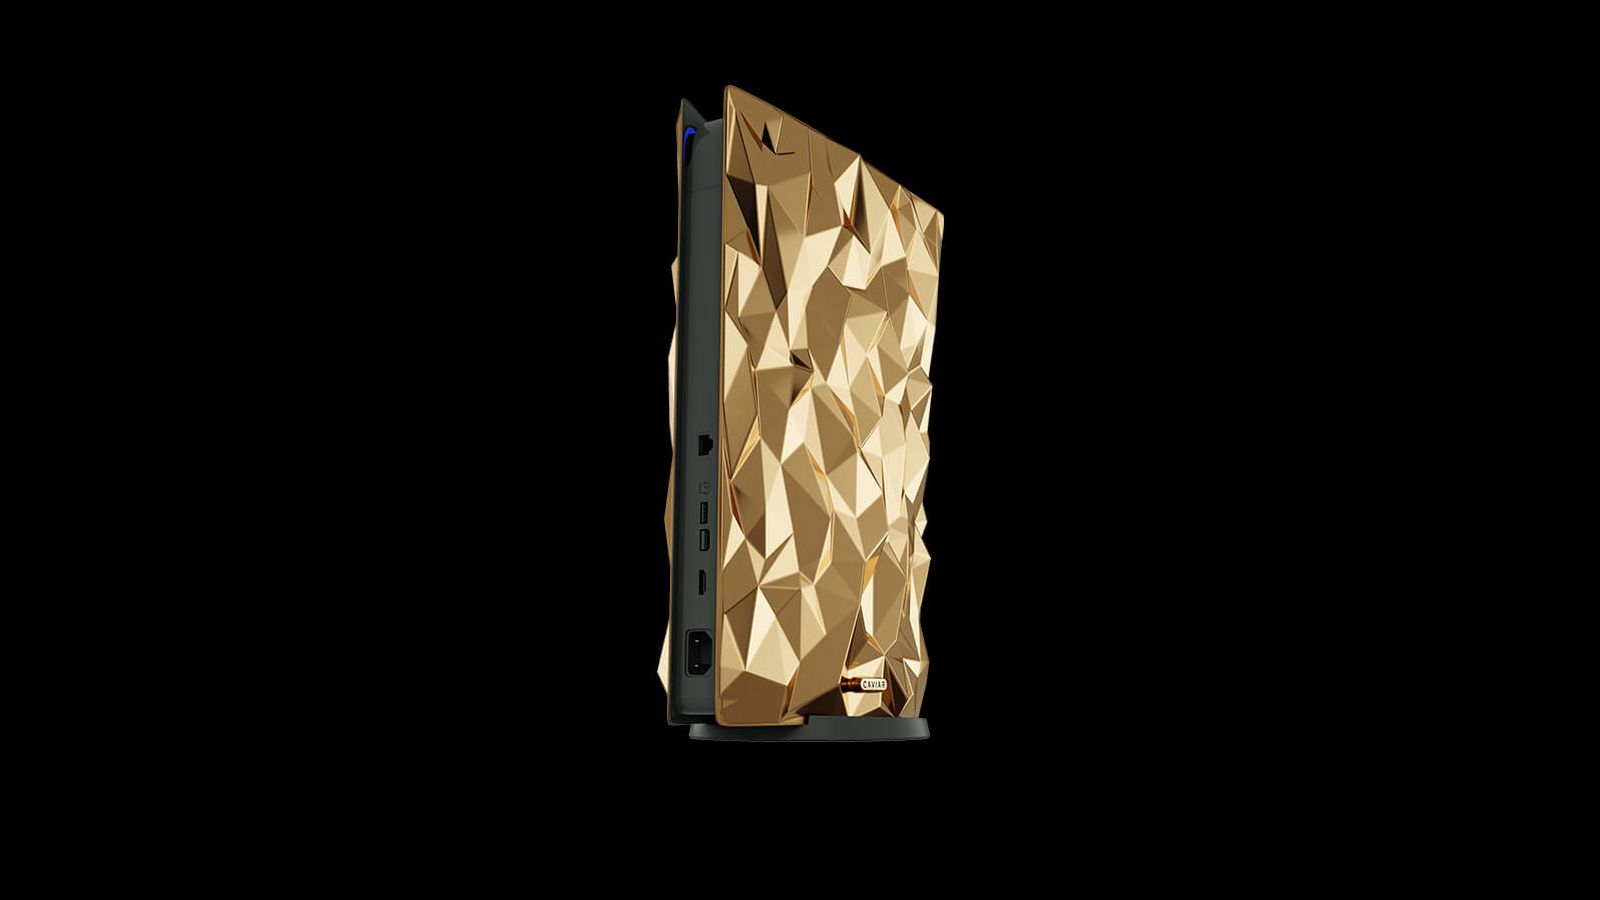 Caviar Golden Rock Sony PlayStation 5 features 20 kgs of gold